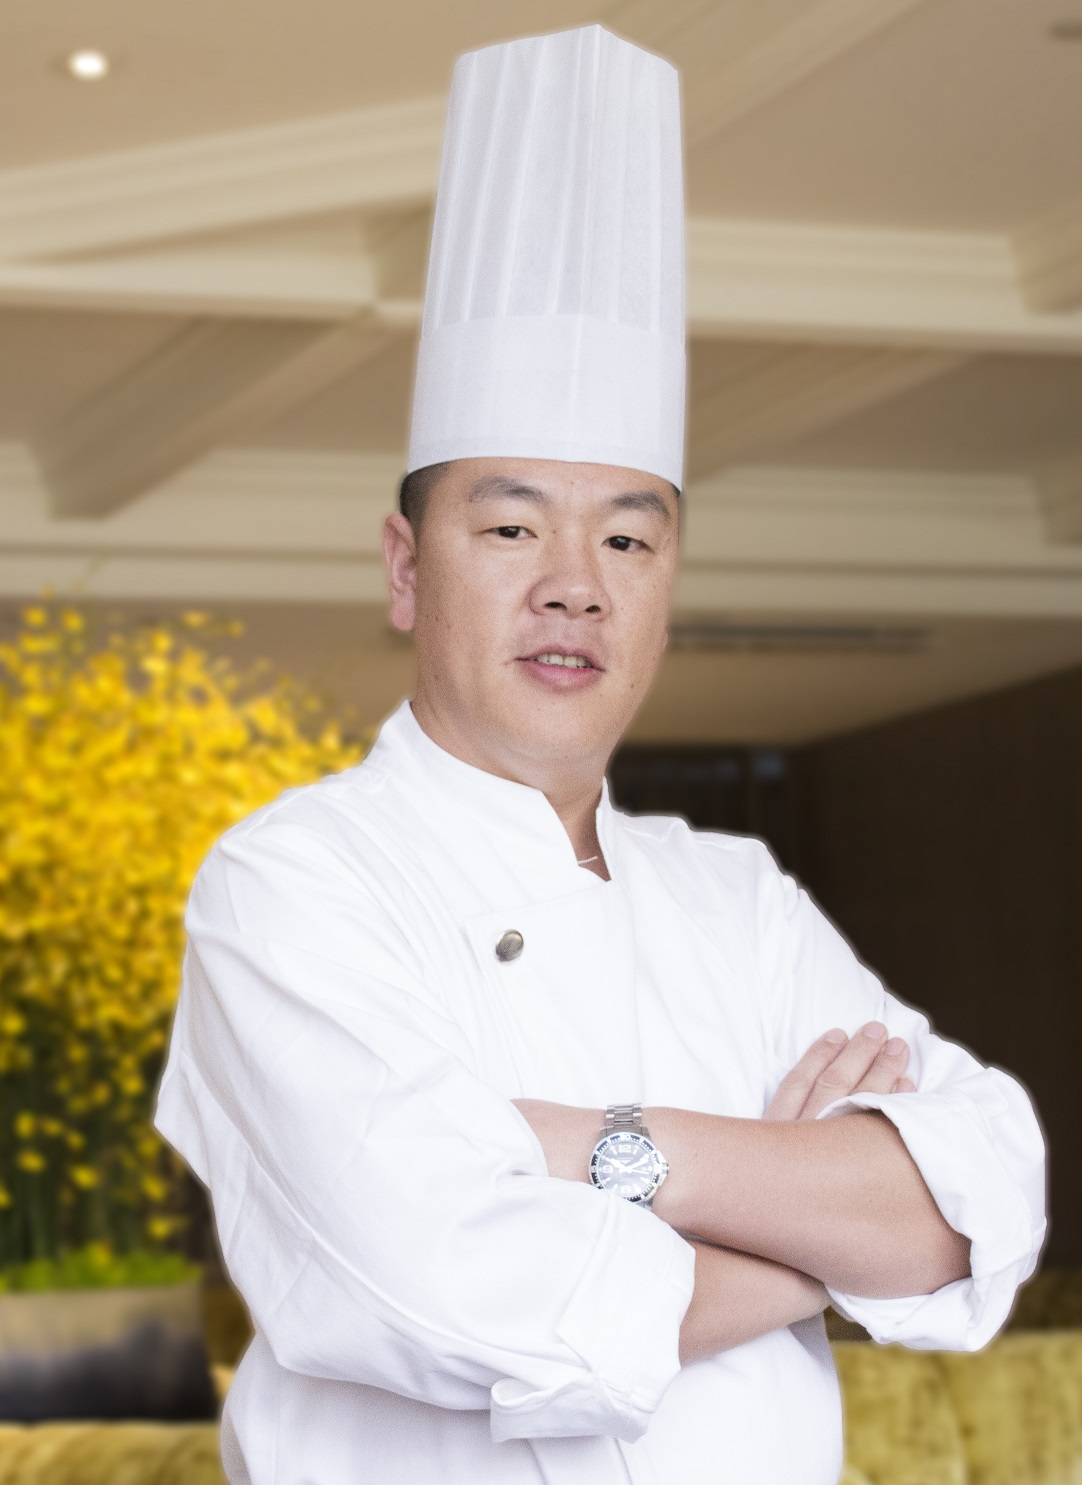 Hyatt's Yun Jin welcomes a new guest chef Wen Chun Chen from Sichuan, China to present his traditional Sichuan delicacies.  With more than 20 years of...